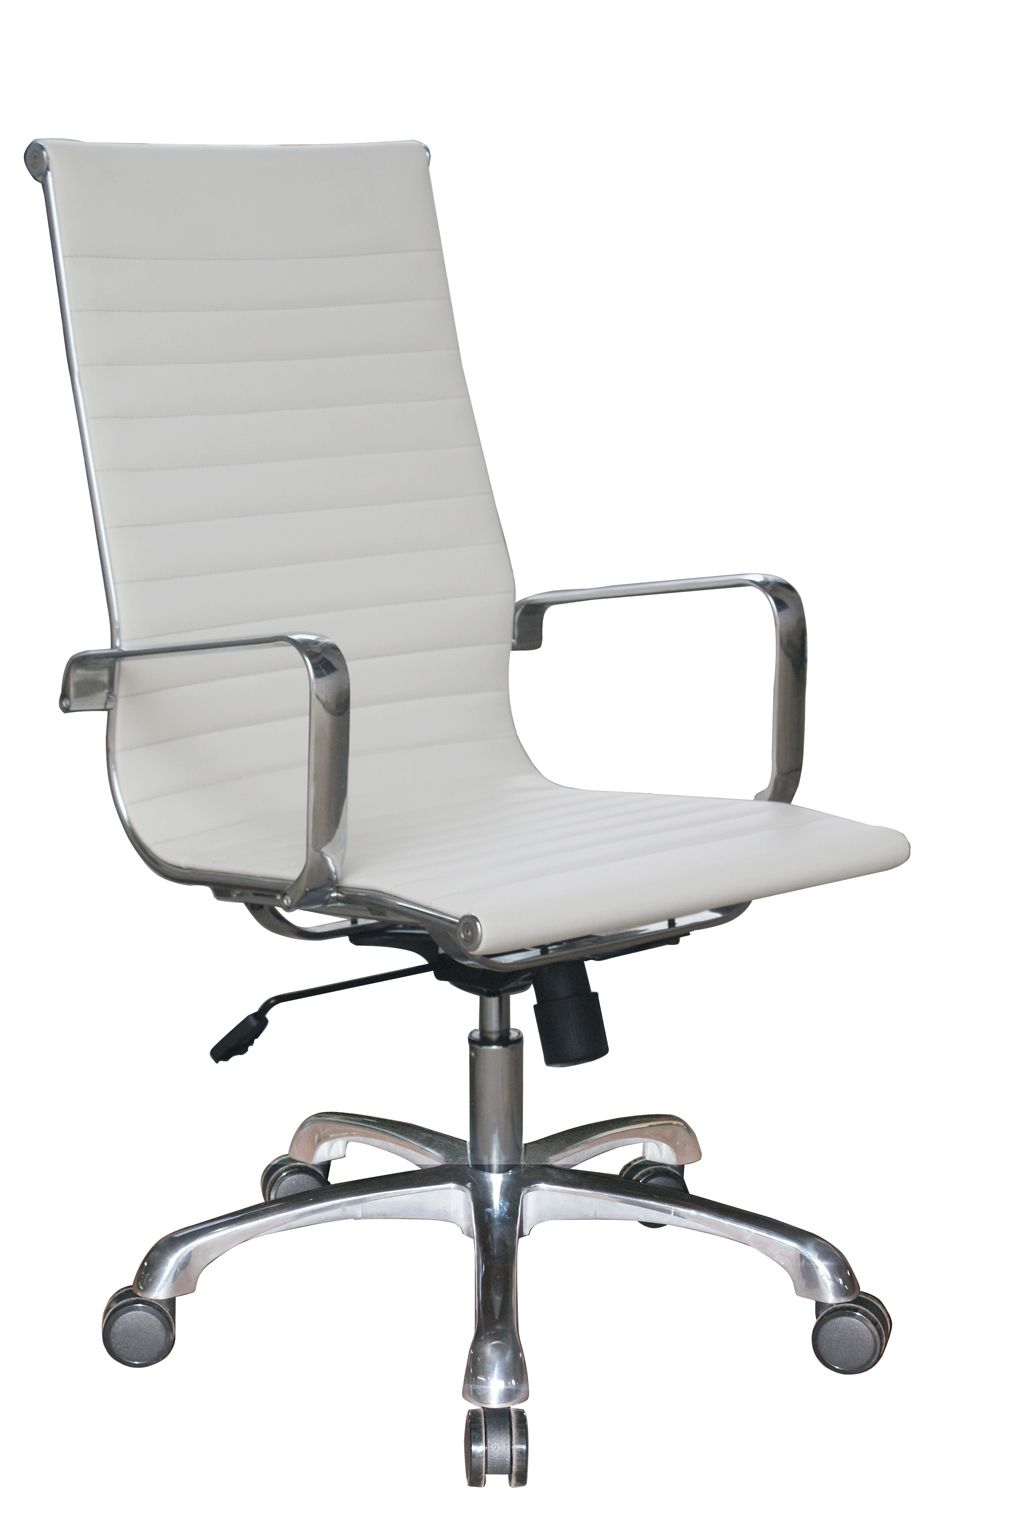 Conference Room Task Chairs Ssf Auto Office In 2019